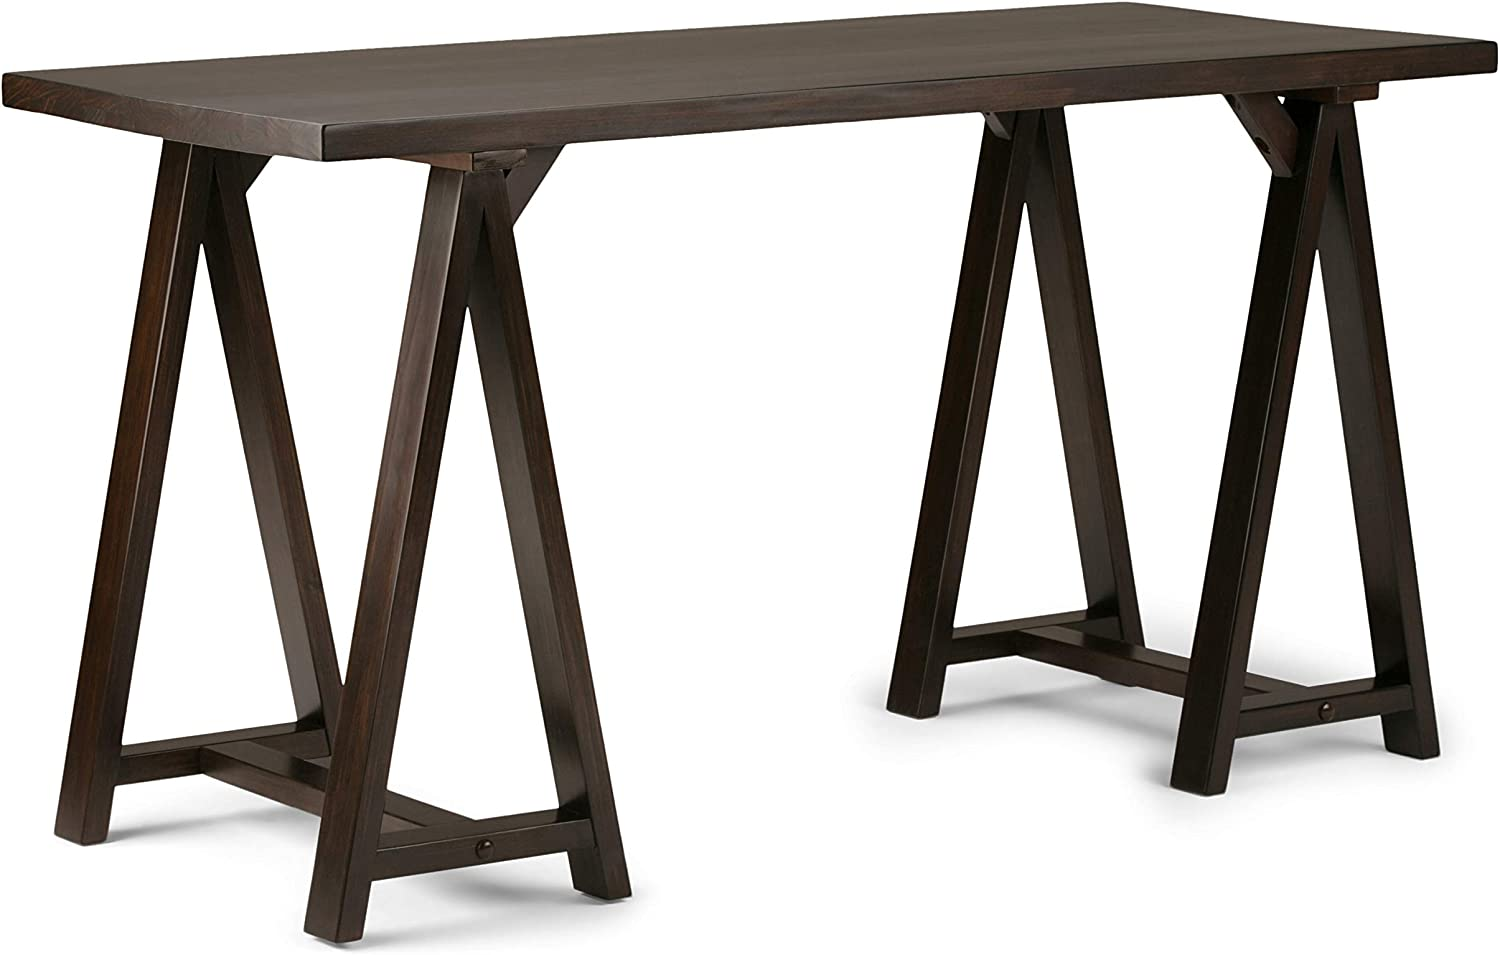 SIMPLIHOME Sawhorse SOLID WOOD Industrial Contemporary 56 inch Wide Home Office Desk, Writing Table, Workstation, Study Table Furniture in Dark Chestnut Brown